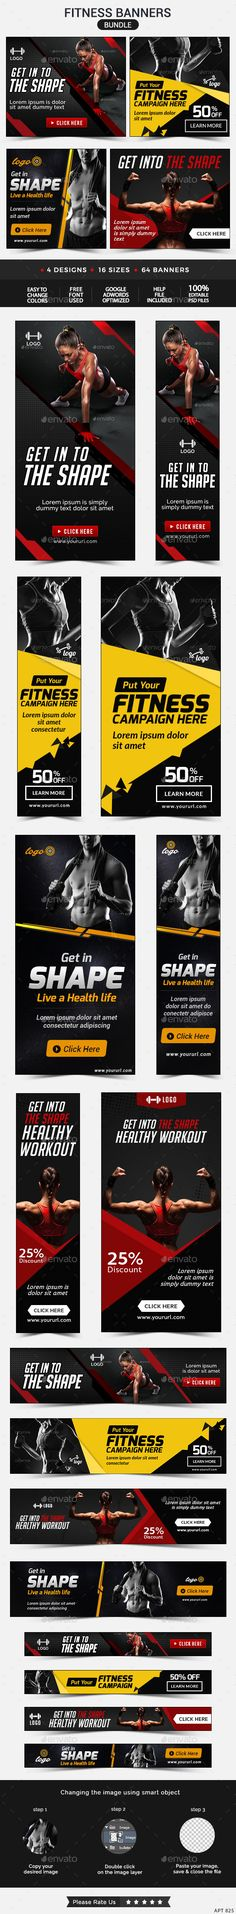 Fitness Banners Bundle - 4 Sets Template #design Download: http://graphicriver.net/item/fitness-banners-bundle-4-sets/12410525?ref=ksioks